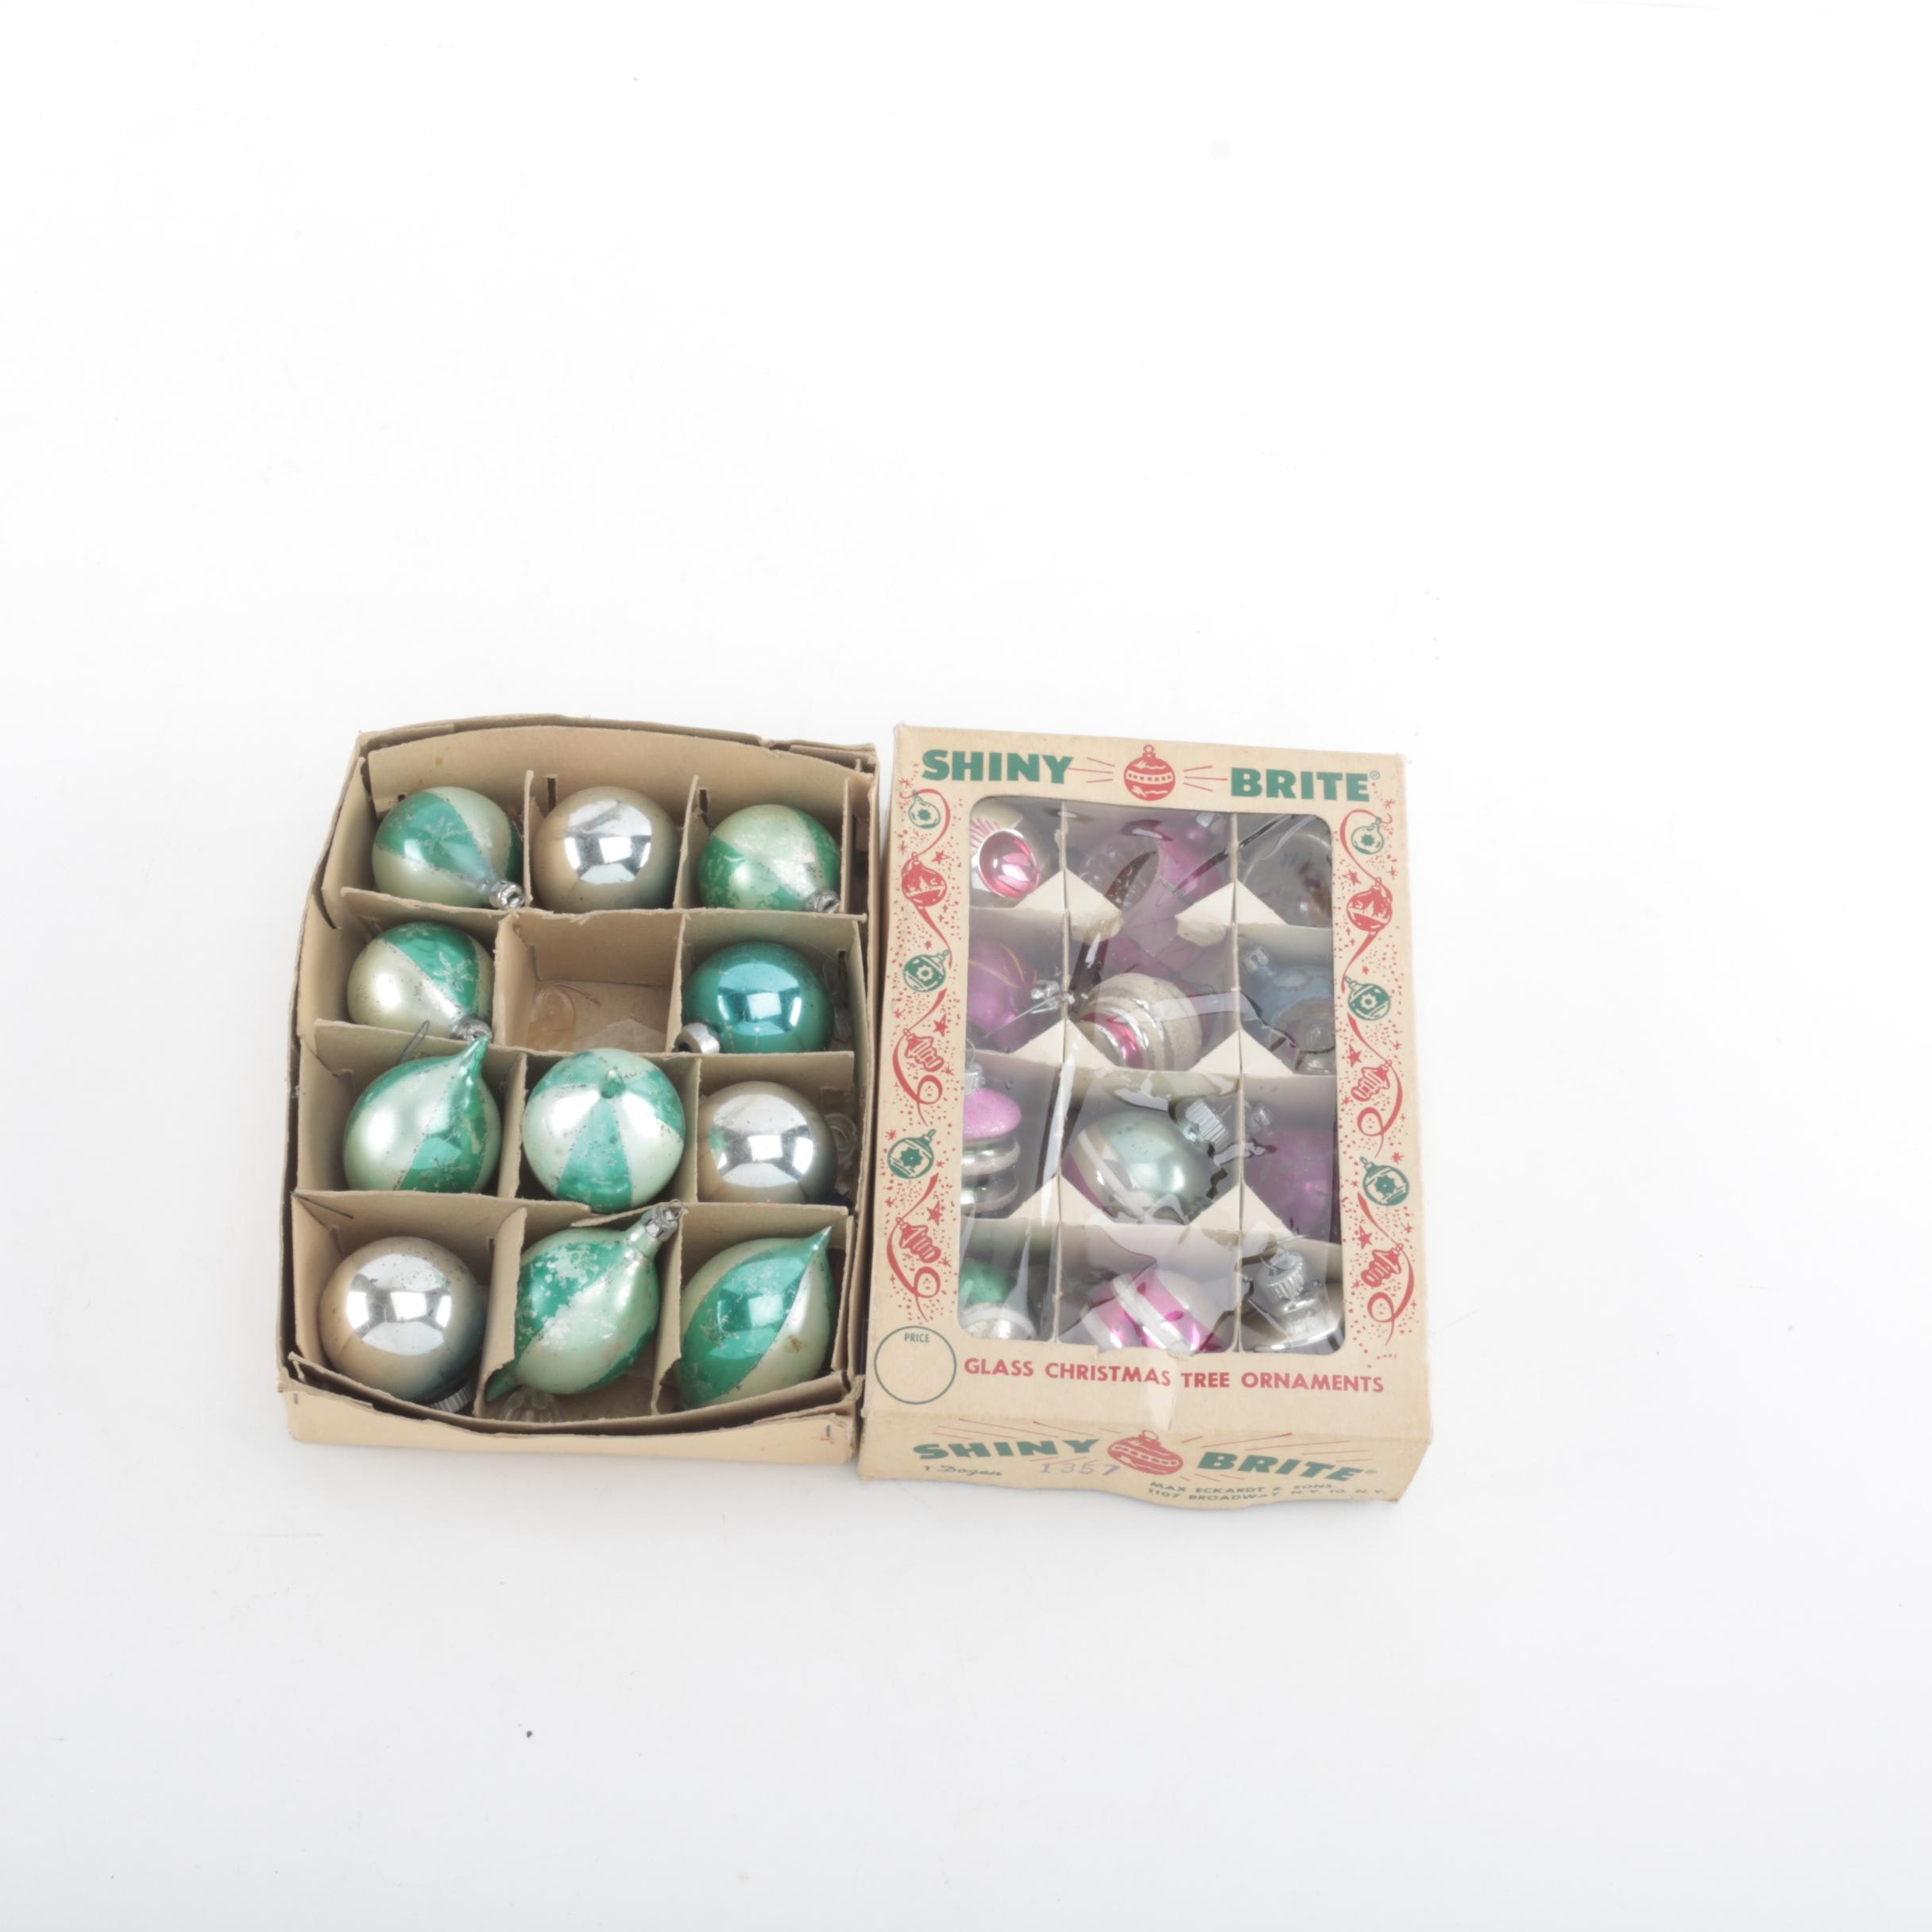 Vintage Christmas Holiday Ornaments Including Shiny Brite